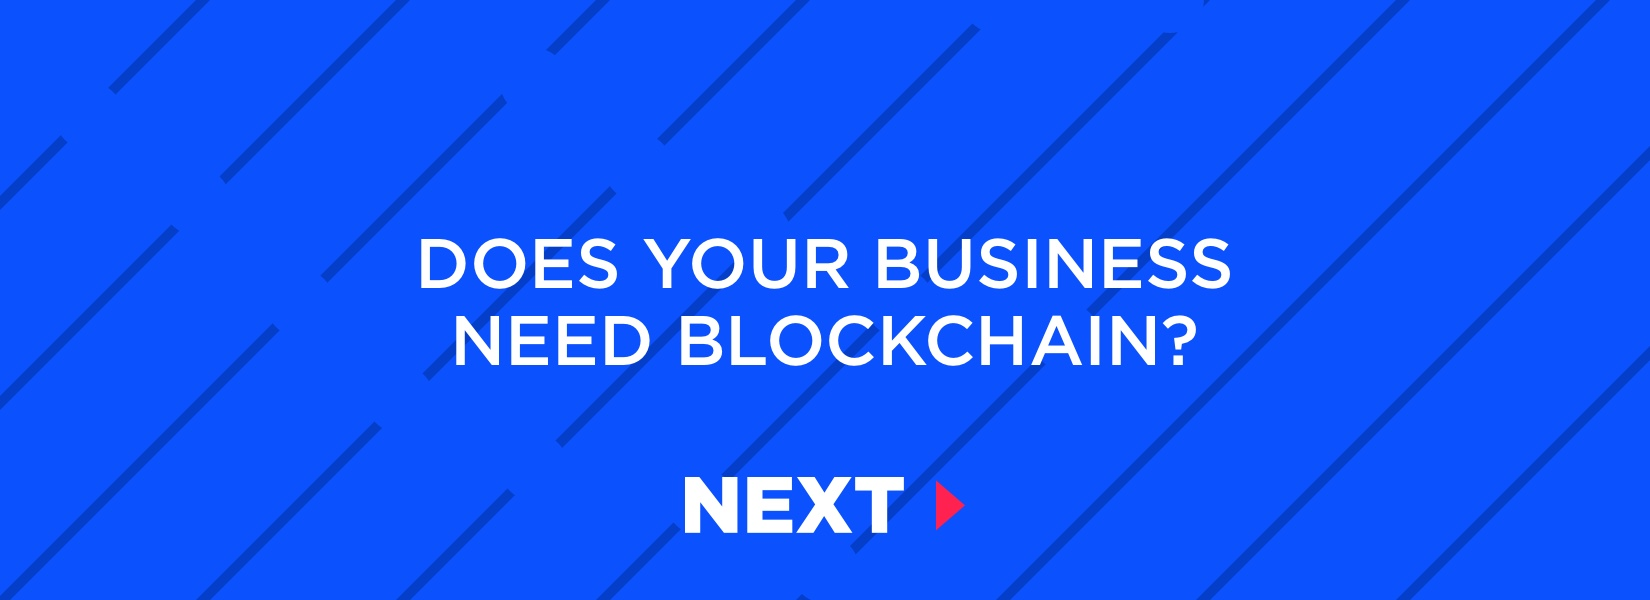 How to know if your business needs blockchain?